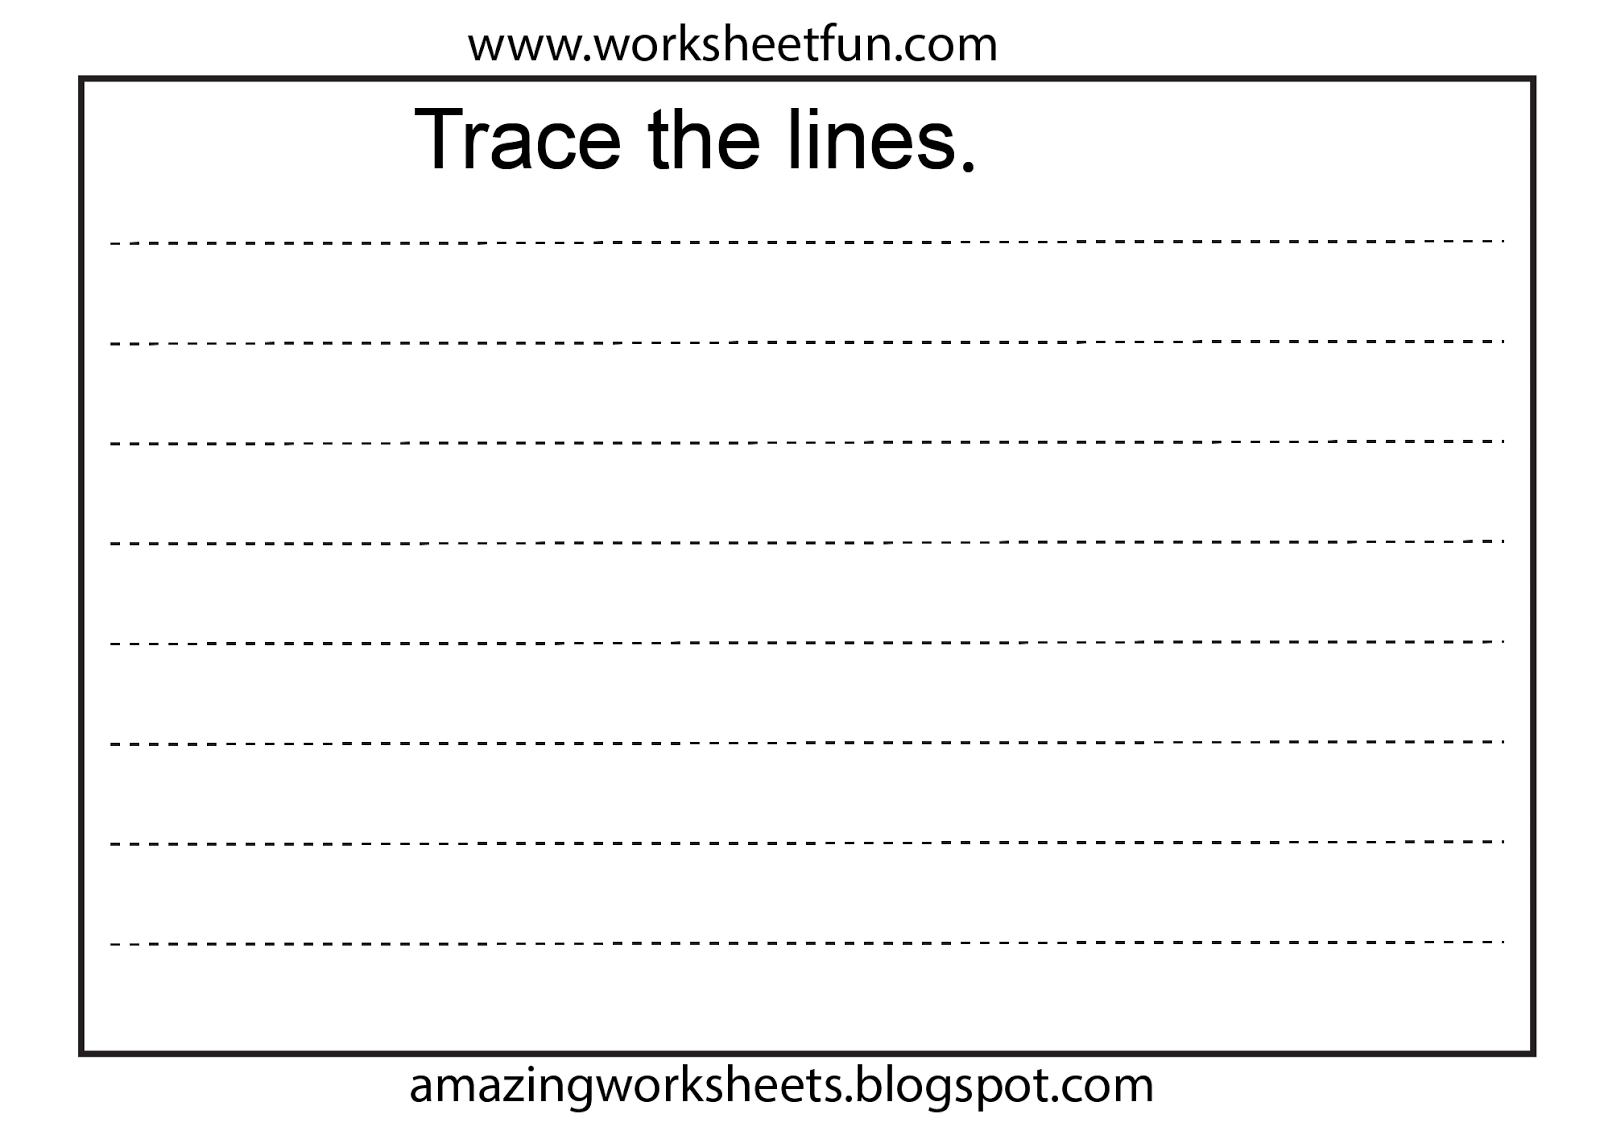 Worksheet Trace Lines Worksheet Wosenly Free Worksheet – Tracing Lines Worksheets